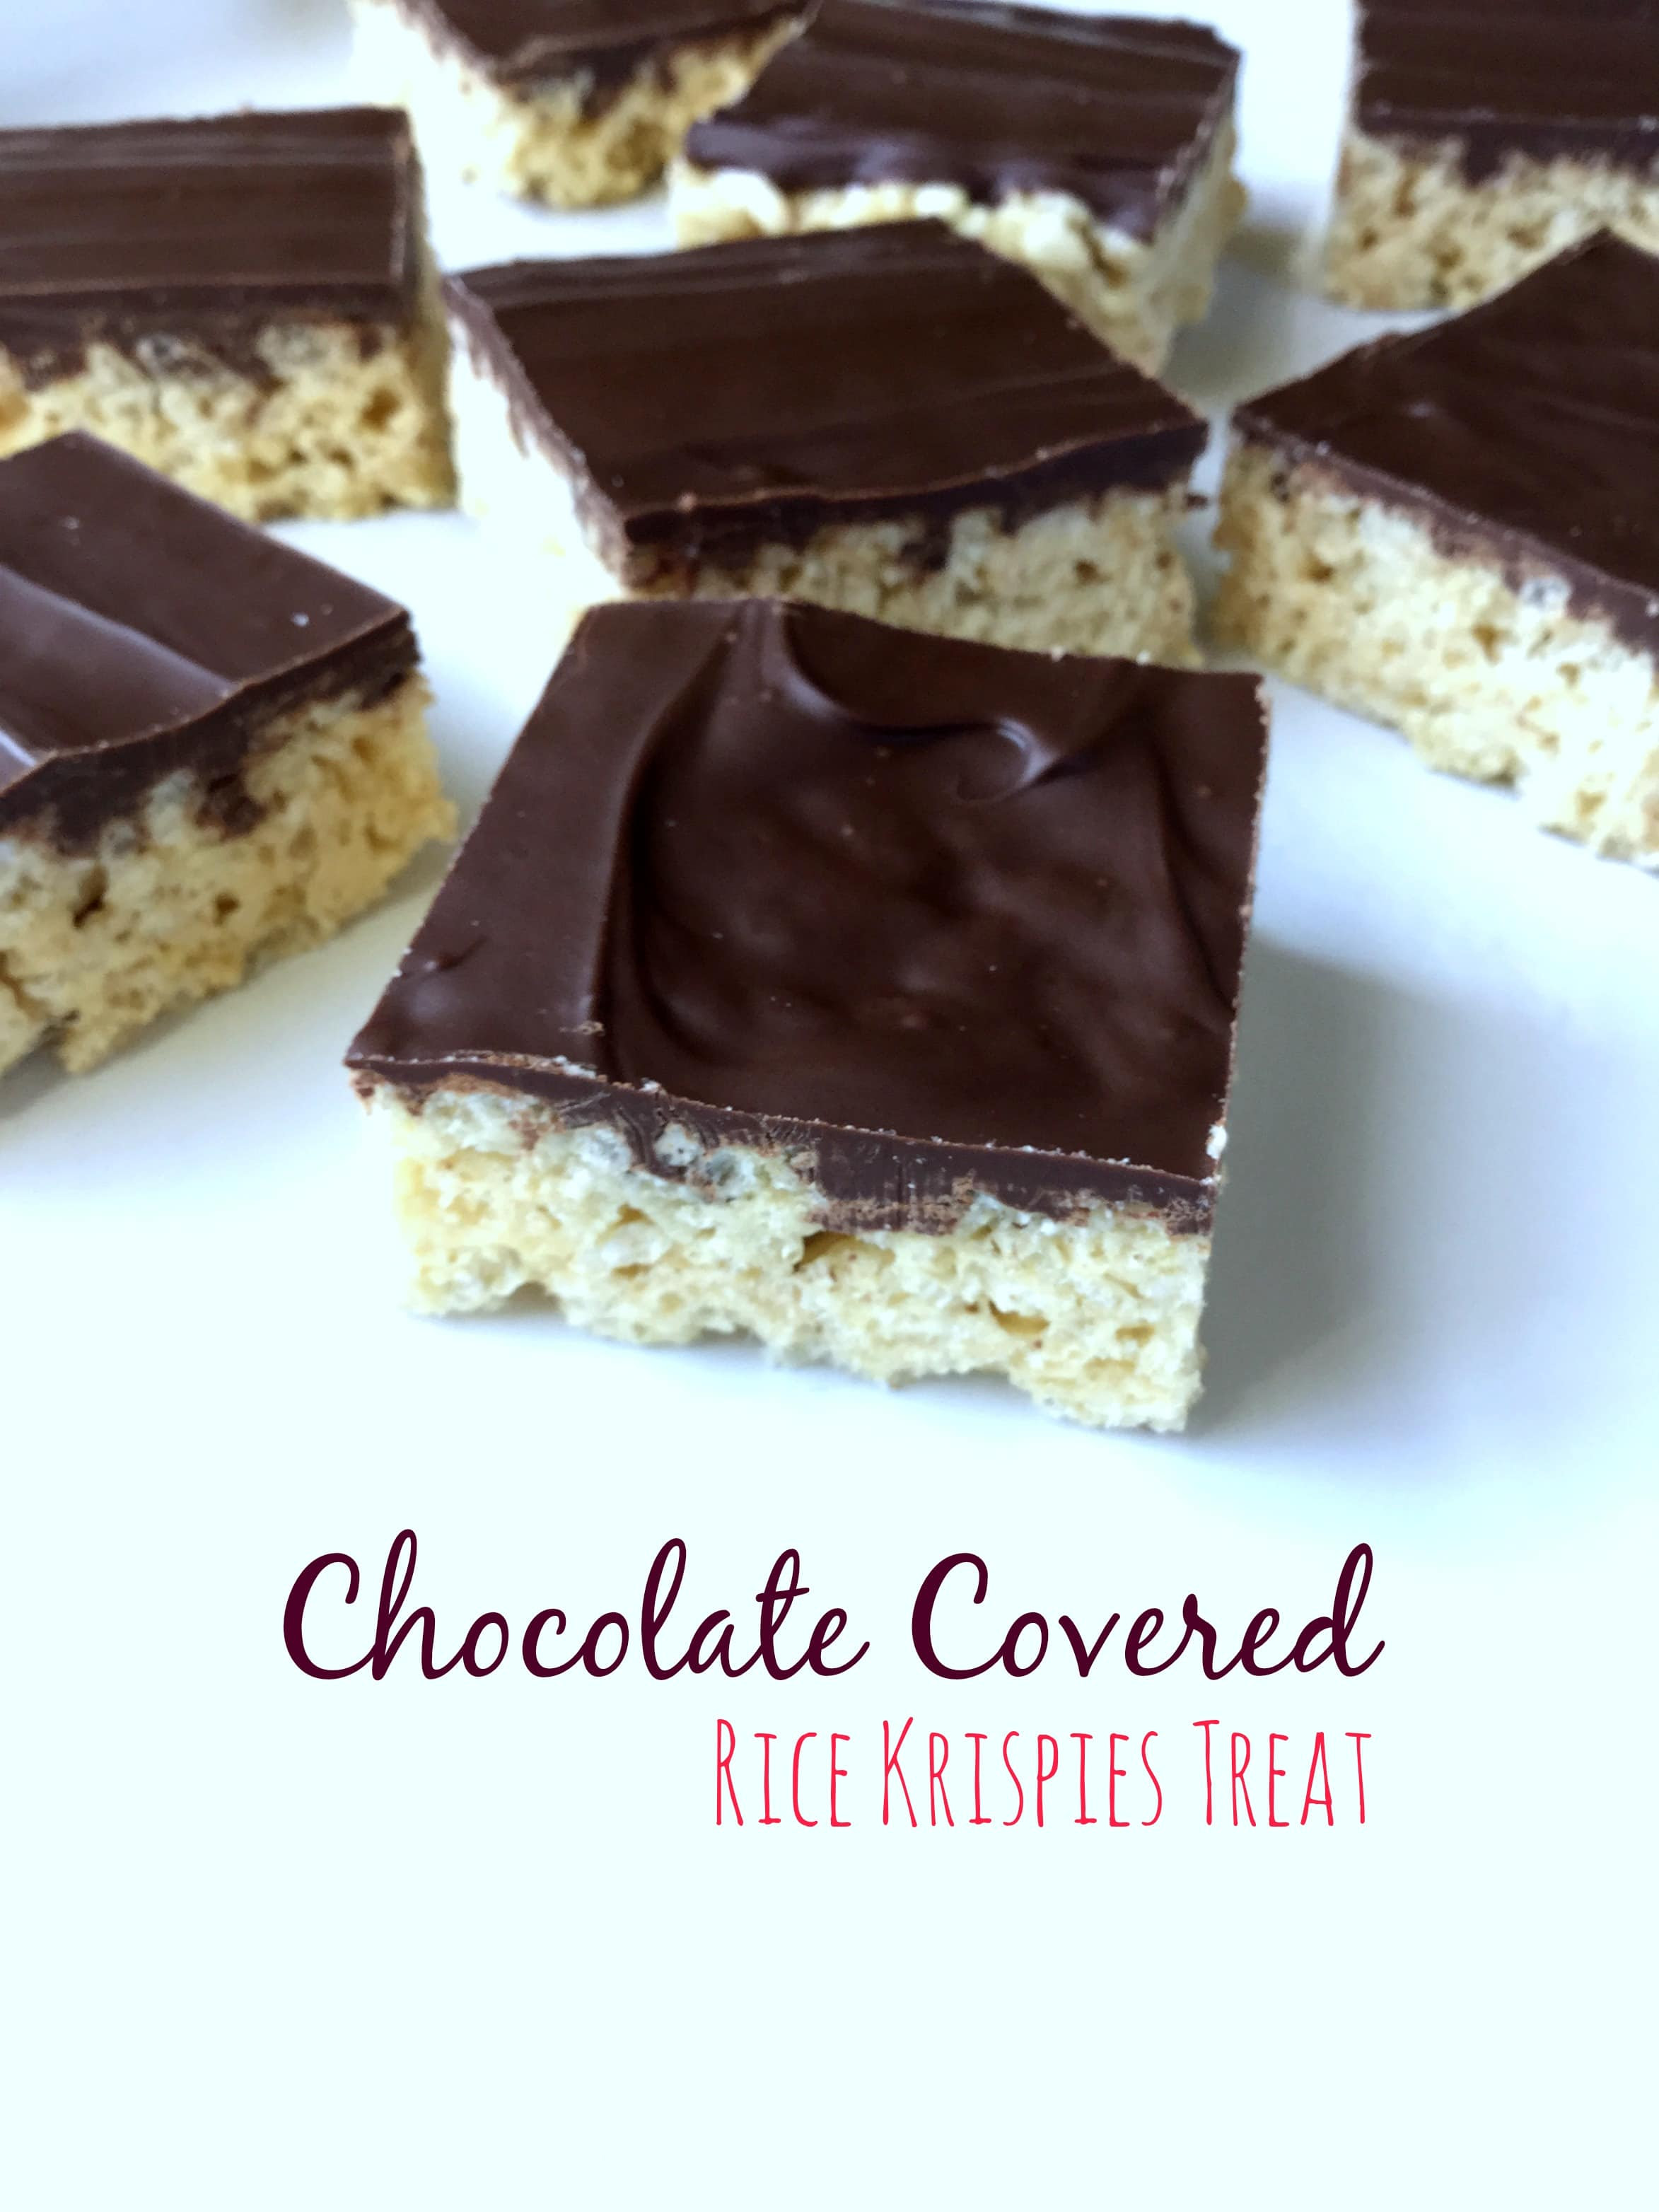 Chocolate Covered Rice Krispies Treat | Garden in the Kitchen